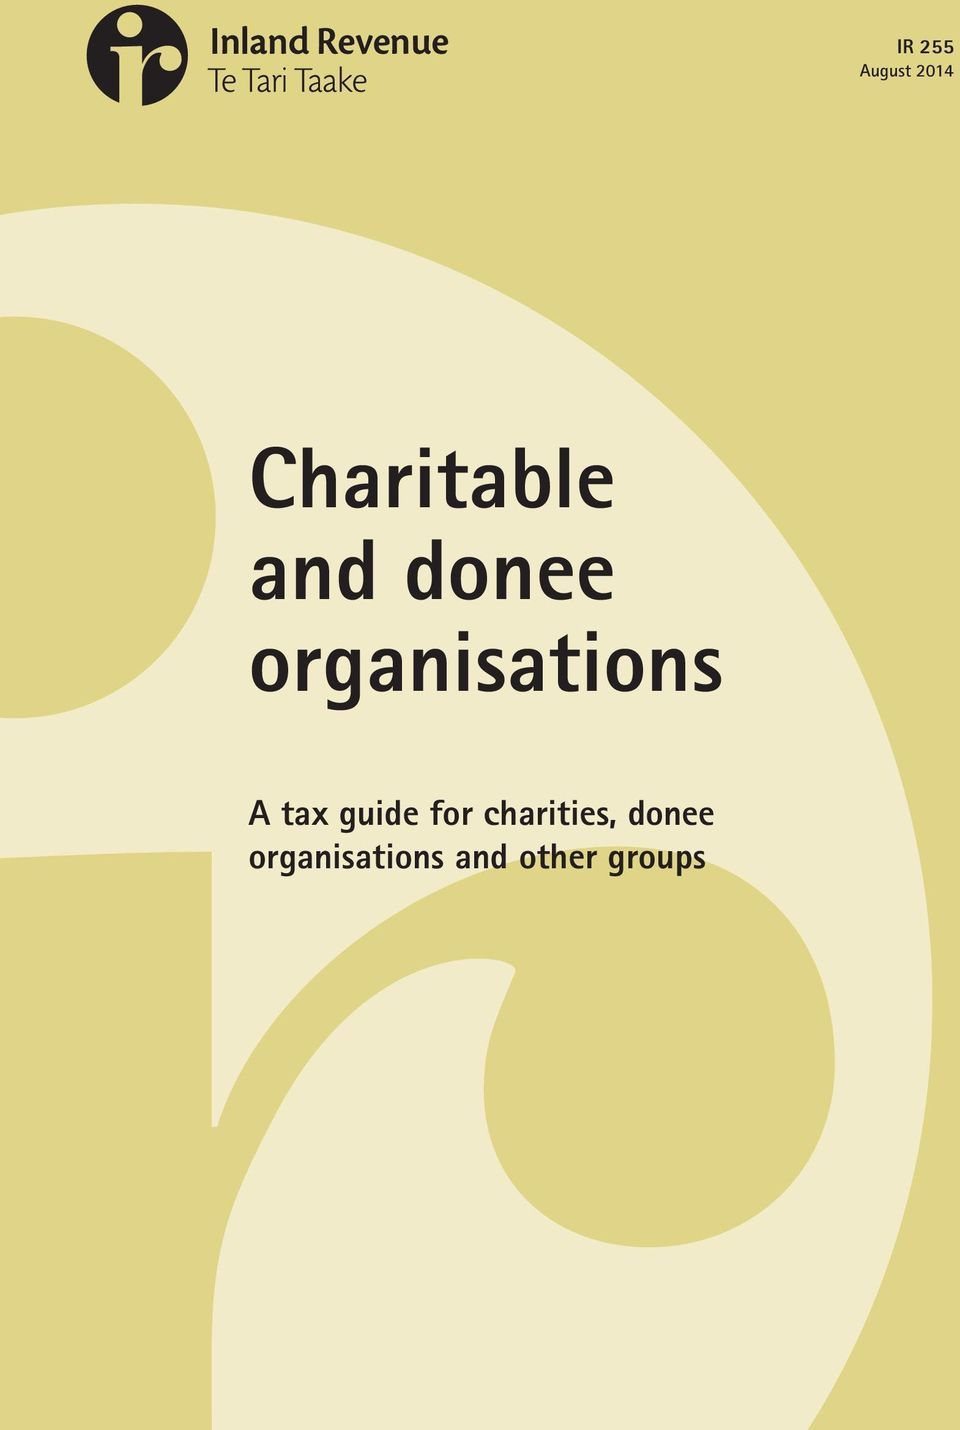 guide for charities, donee